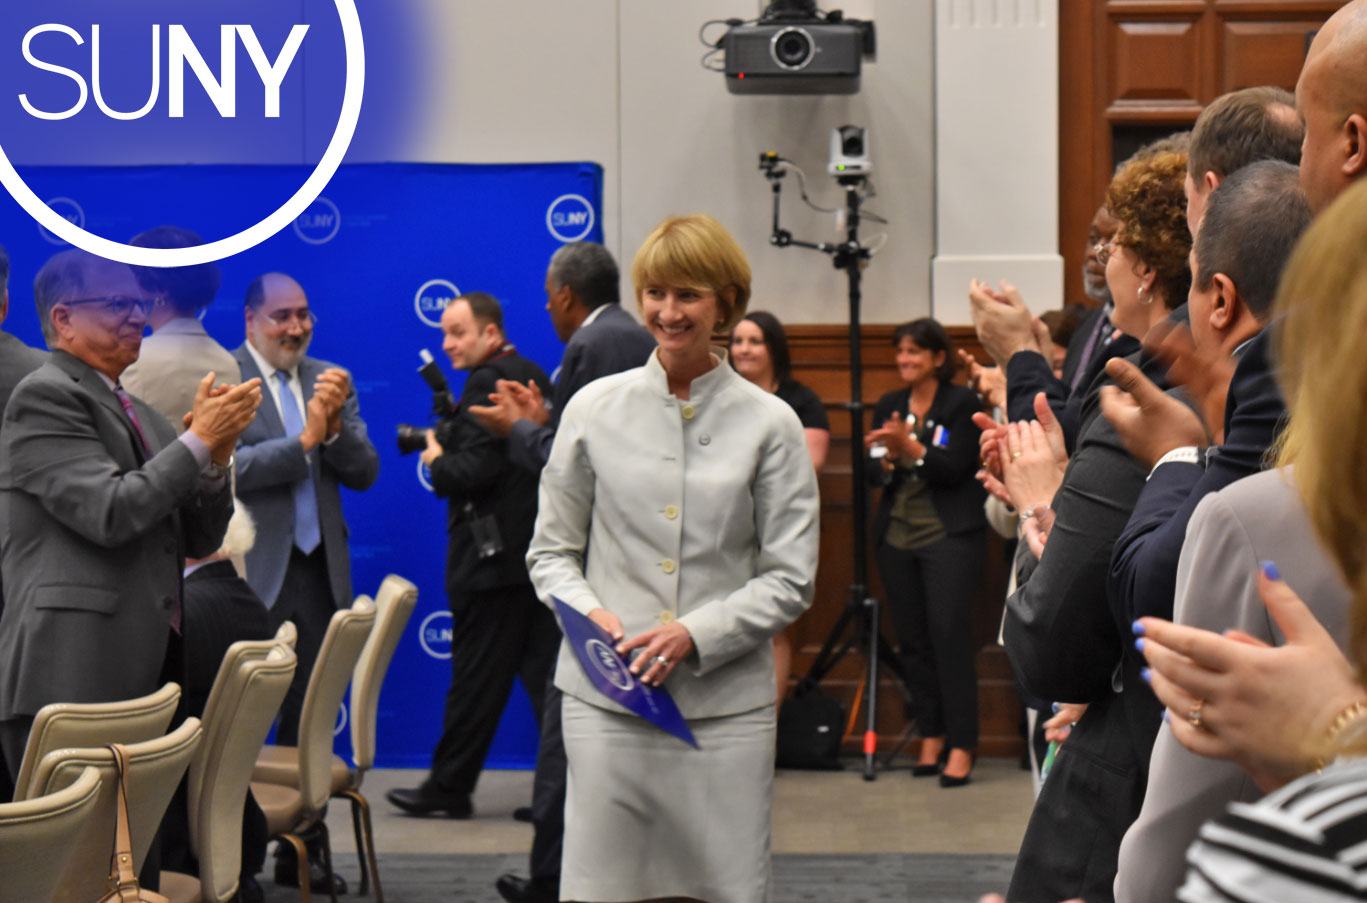 Newly appointed chancellor Kristina M Johnson walks to the podium to give her first remarks.